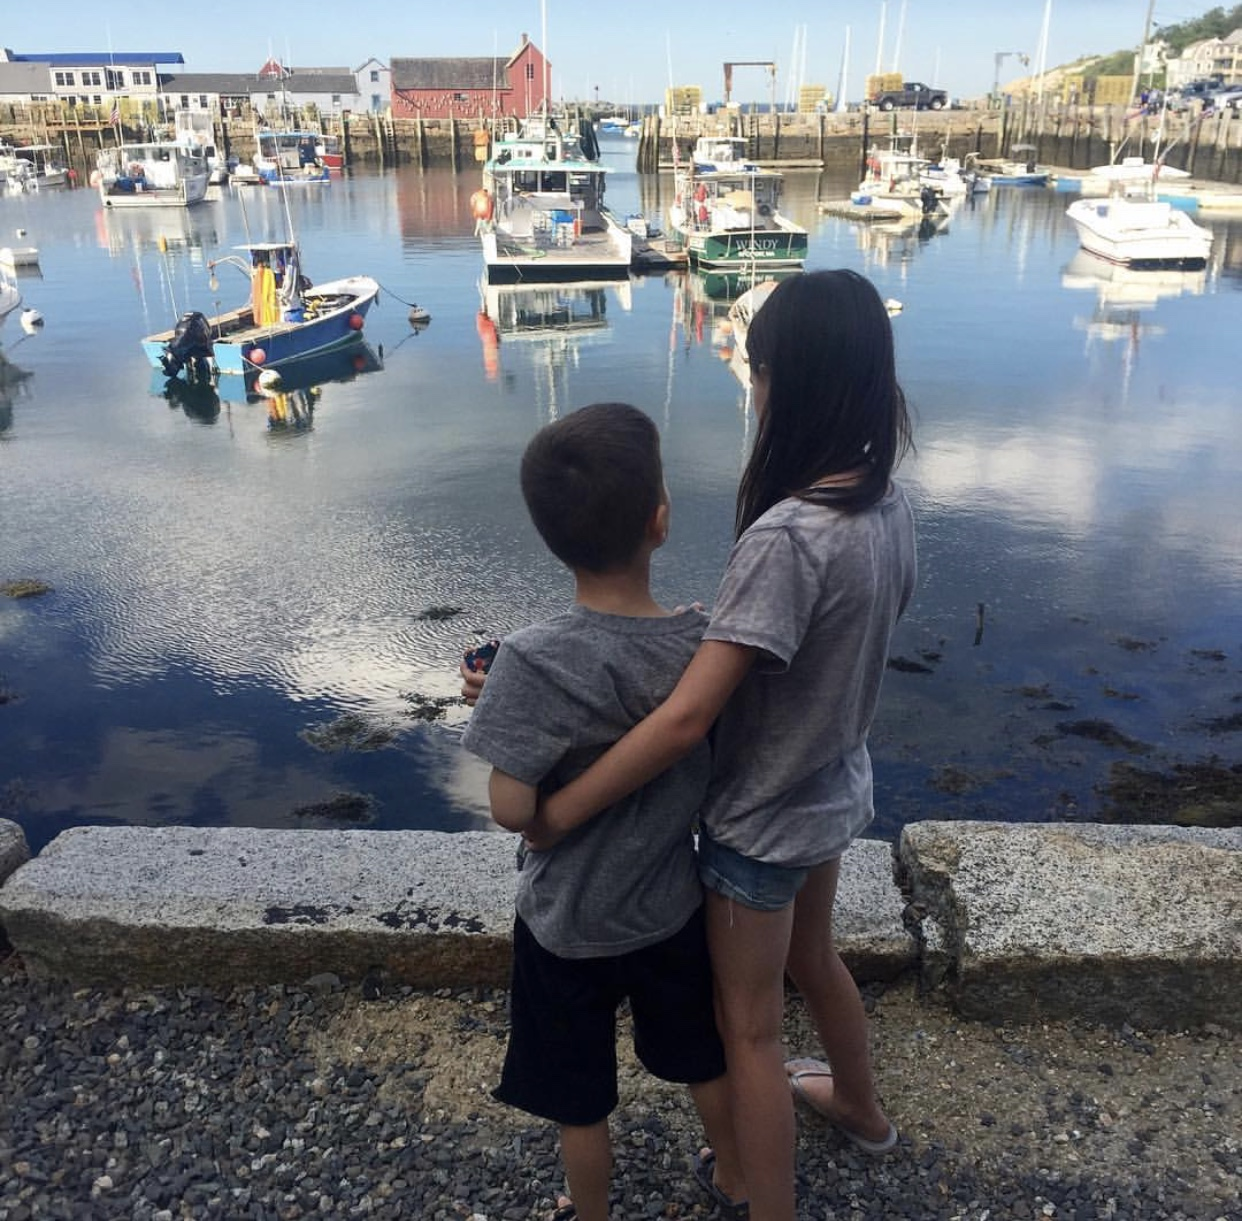 Family Trip Destinations: Rockport, Massachusetts